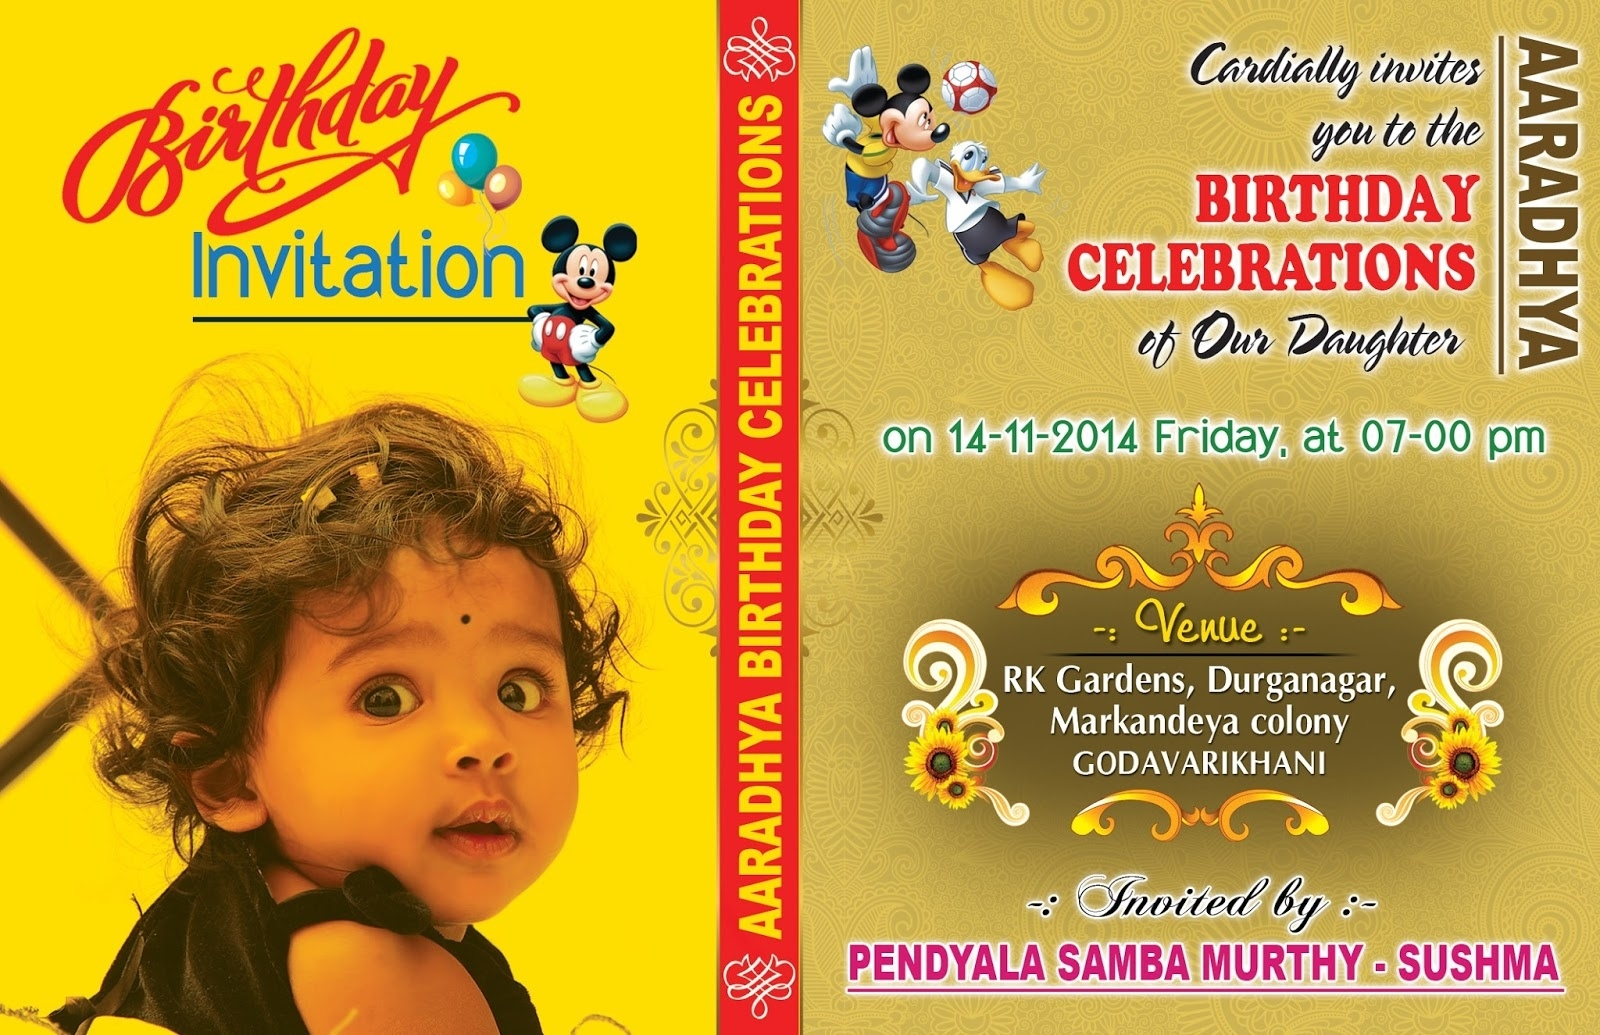 happy birthday invitation card design ; birthday-invitation-card-psd-template-free-birthday-designs-in-birthday-invitation-card-design-for-boys